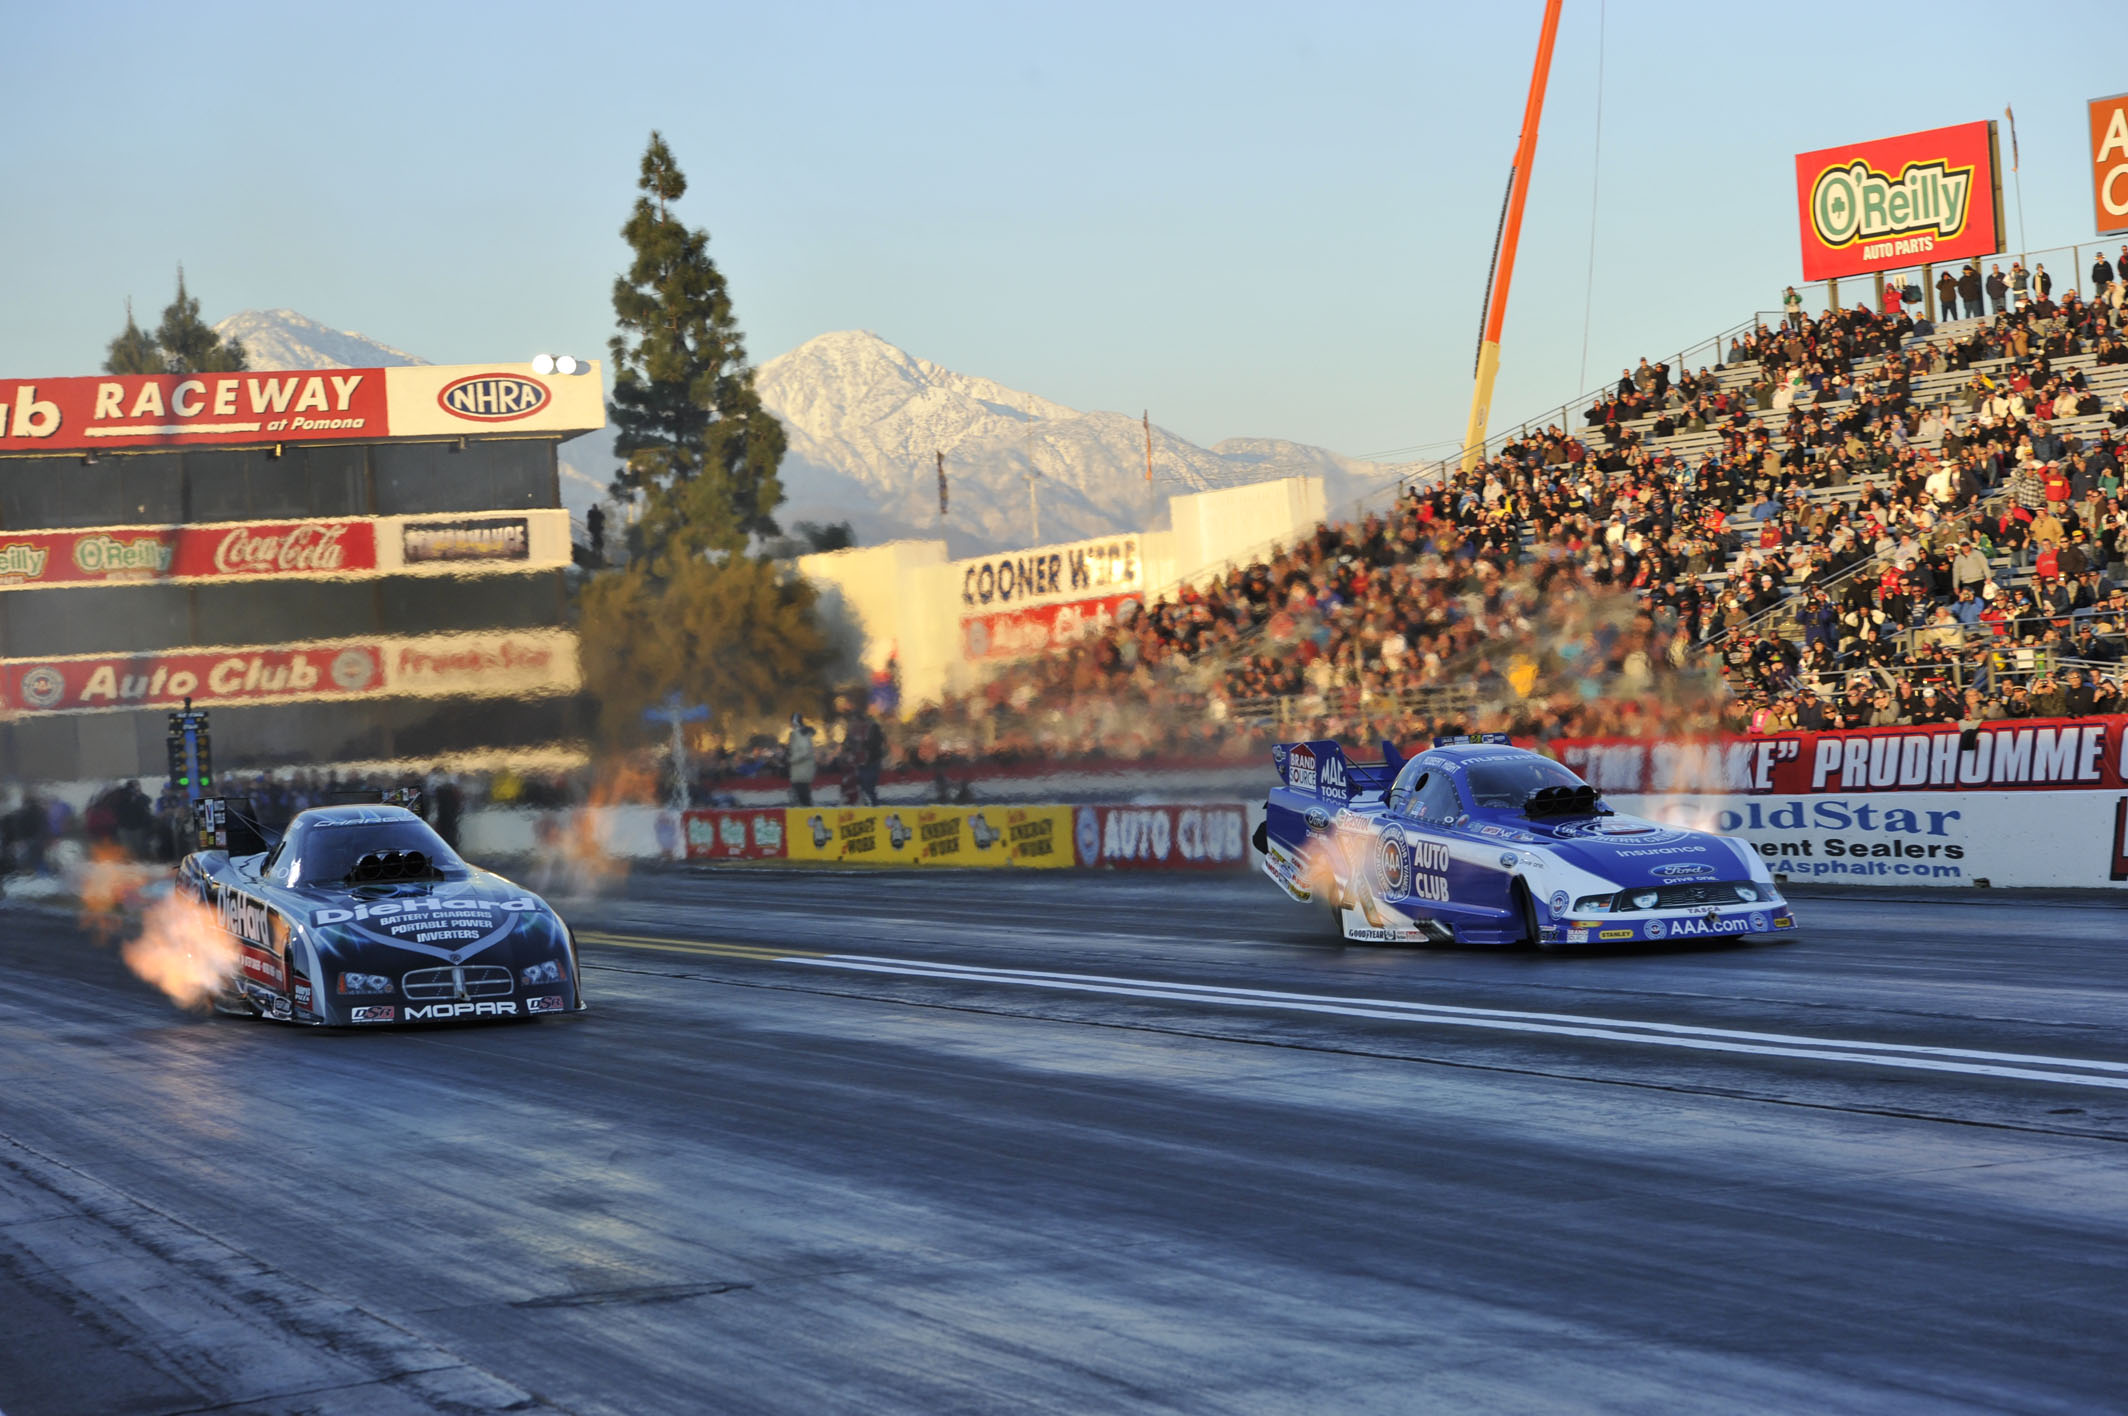 2011 Winternationals, Funny Car, funny car racing, winternational results